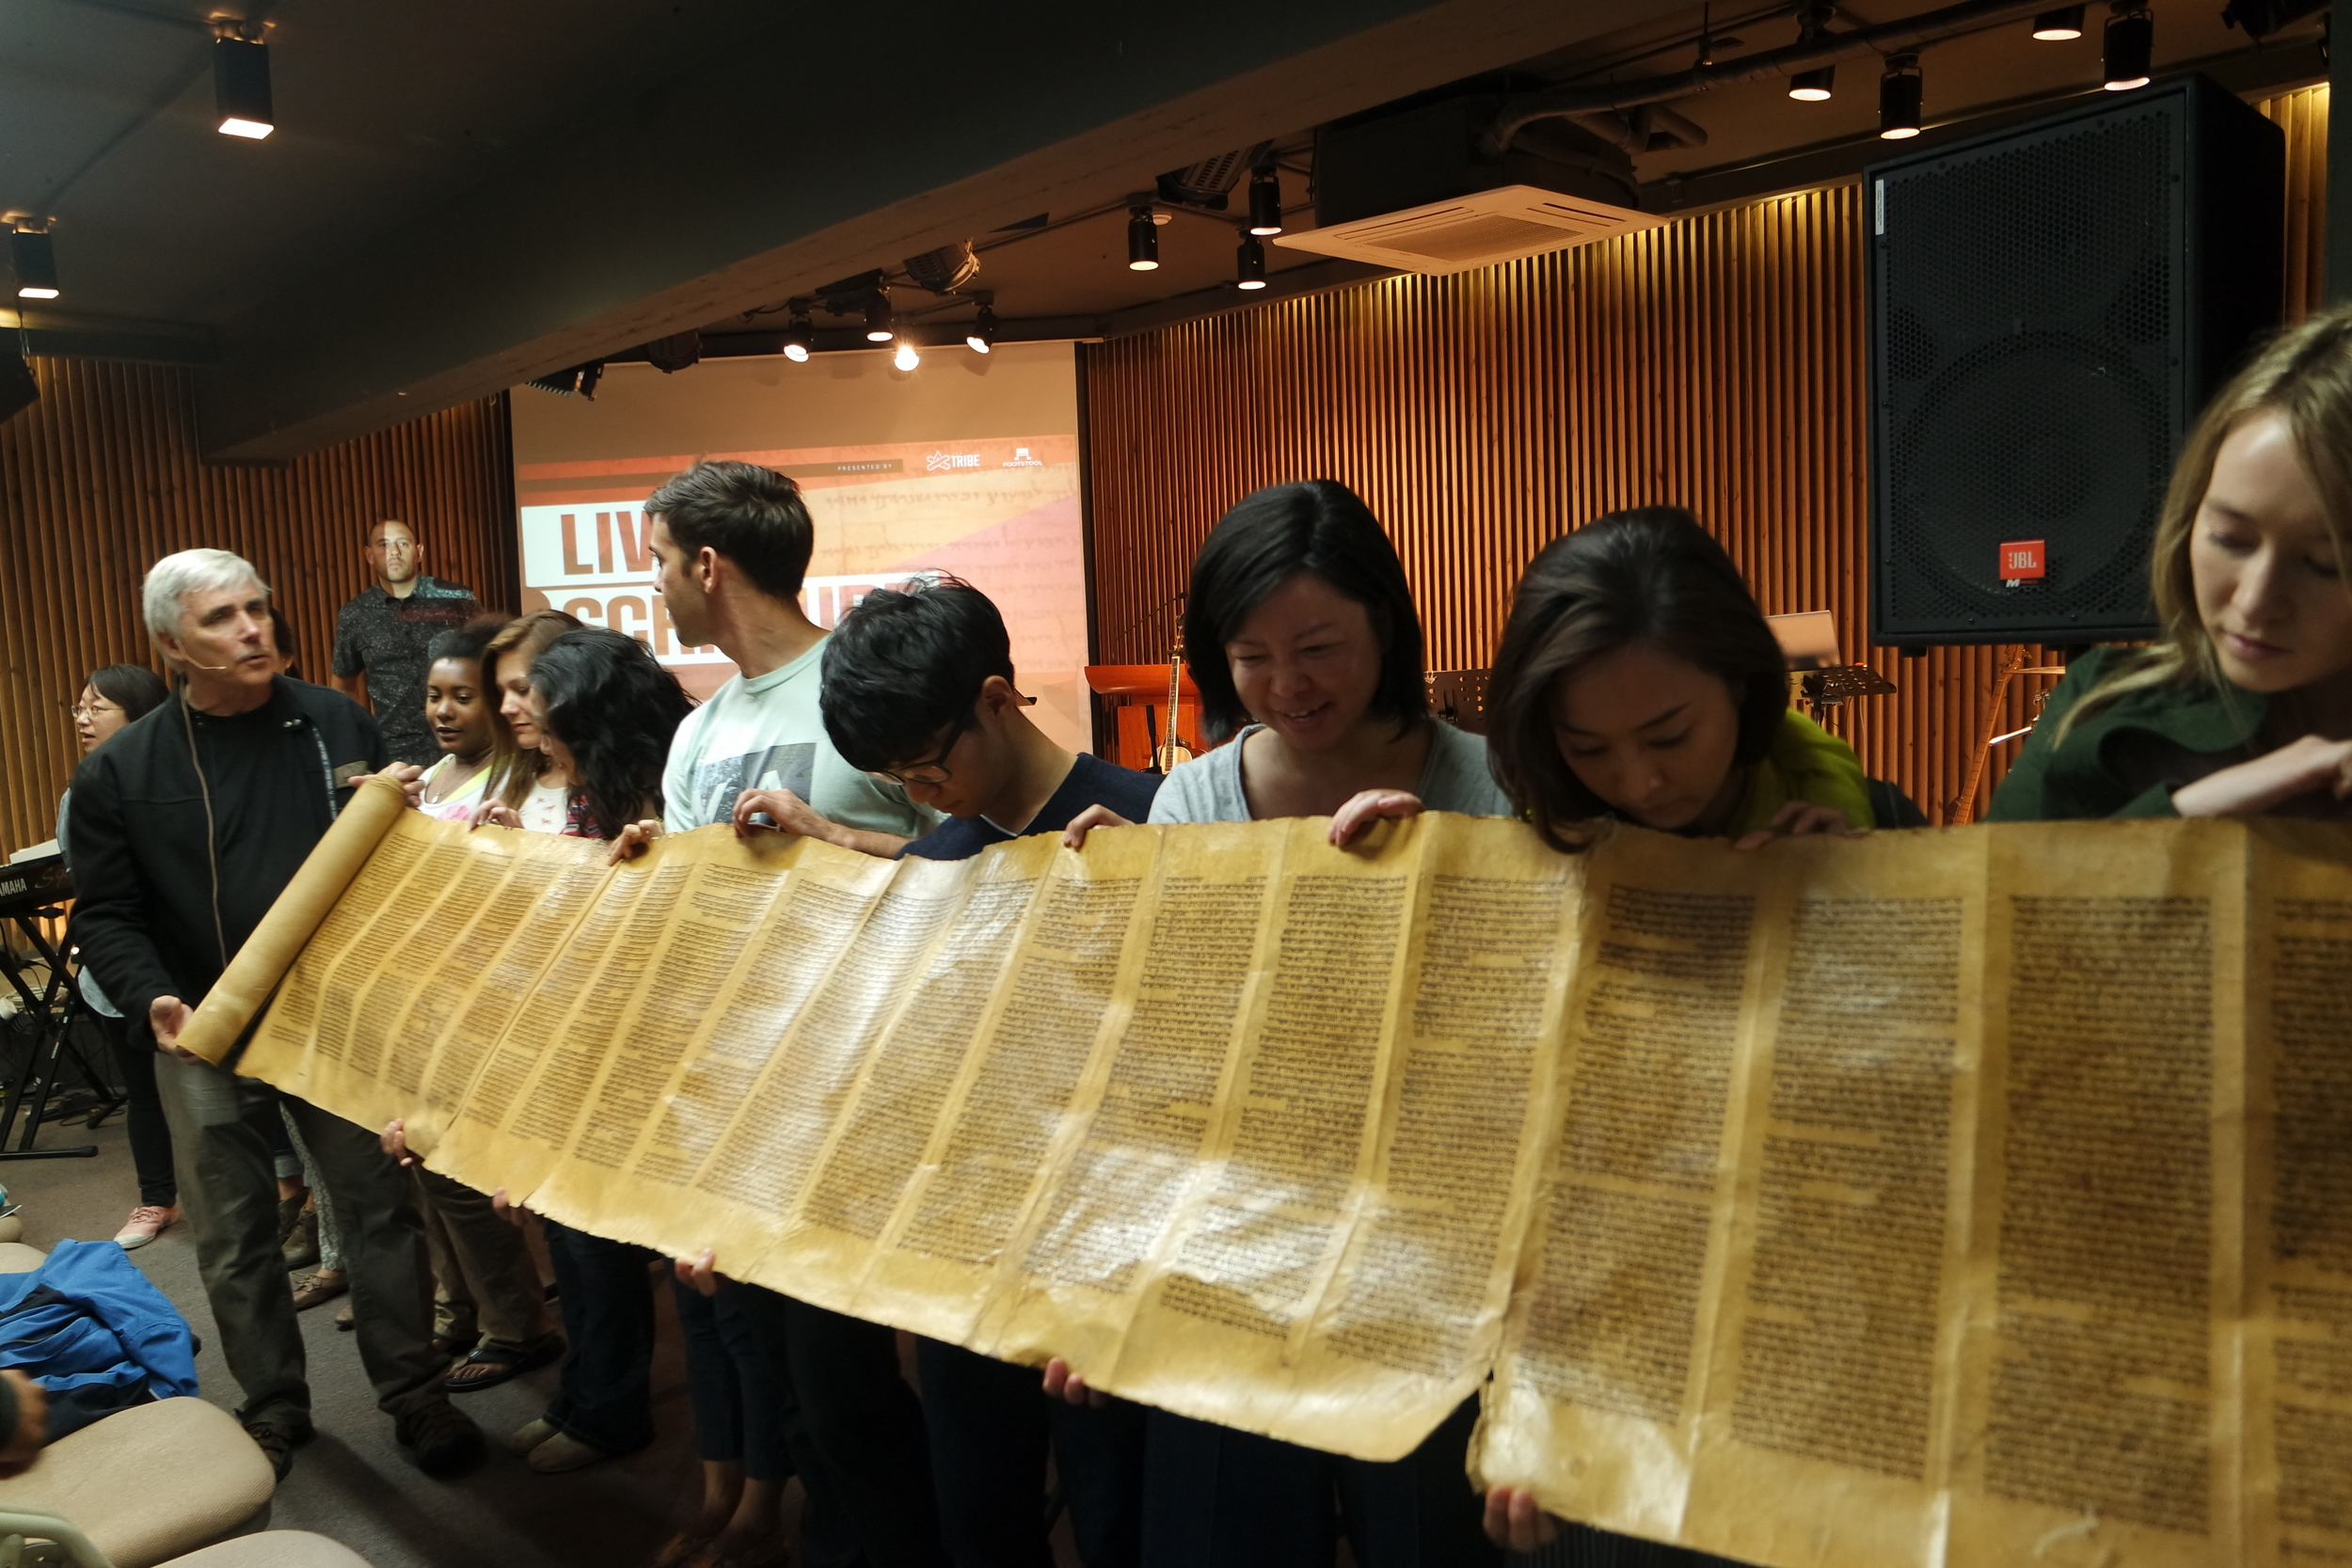 The Torah scroll was slowly and carefully unravelled around the sanctuary